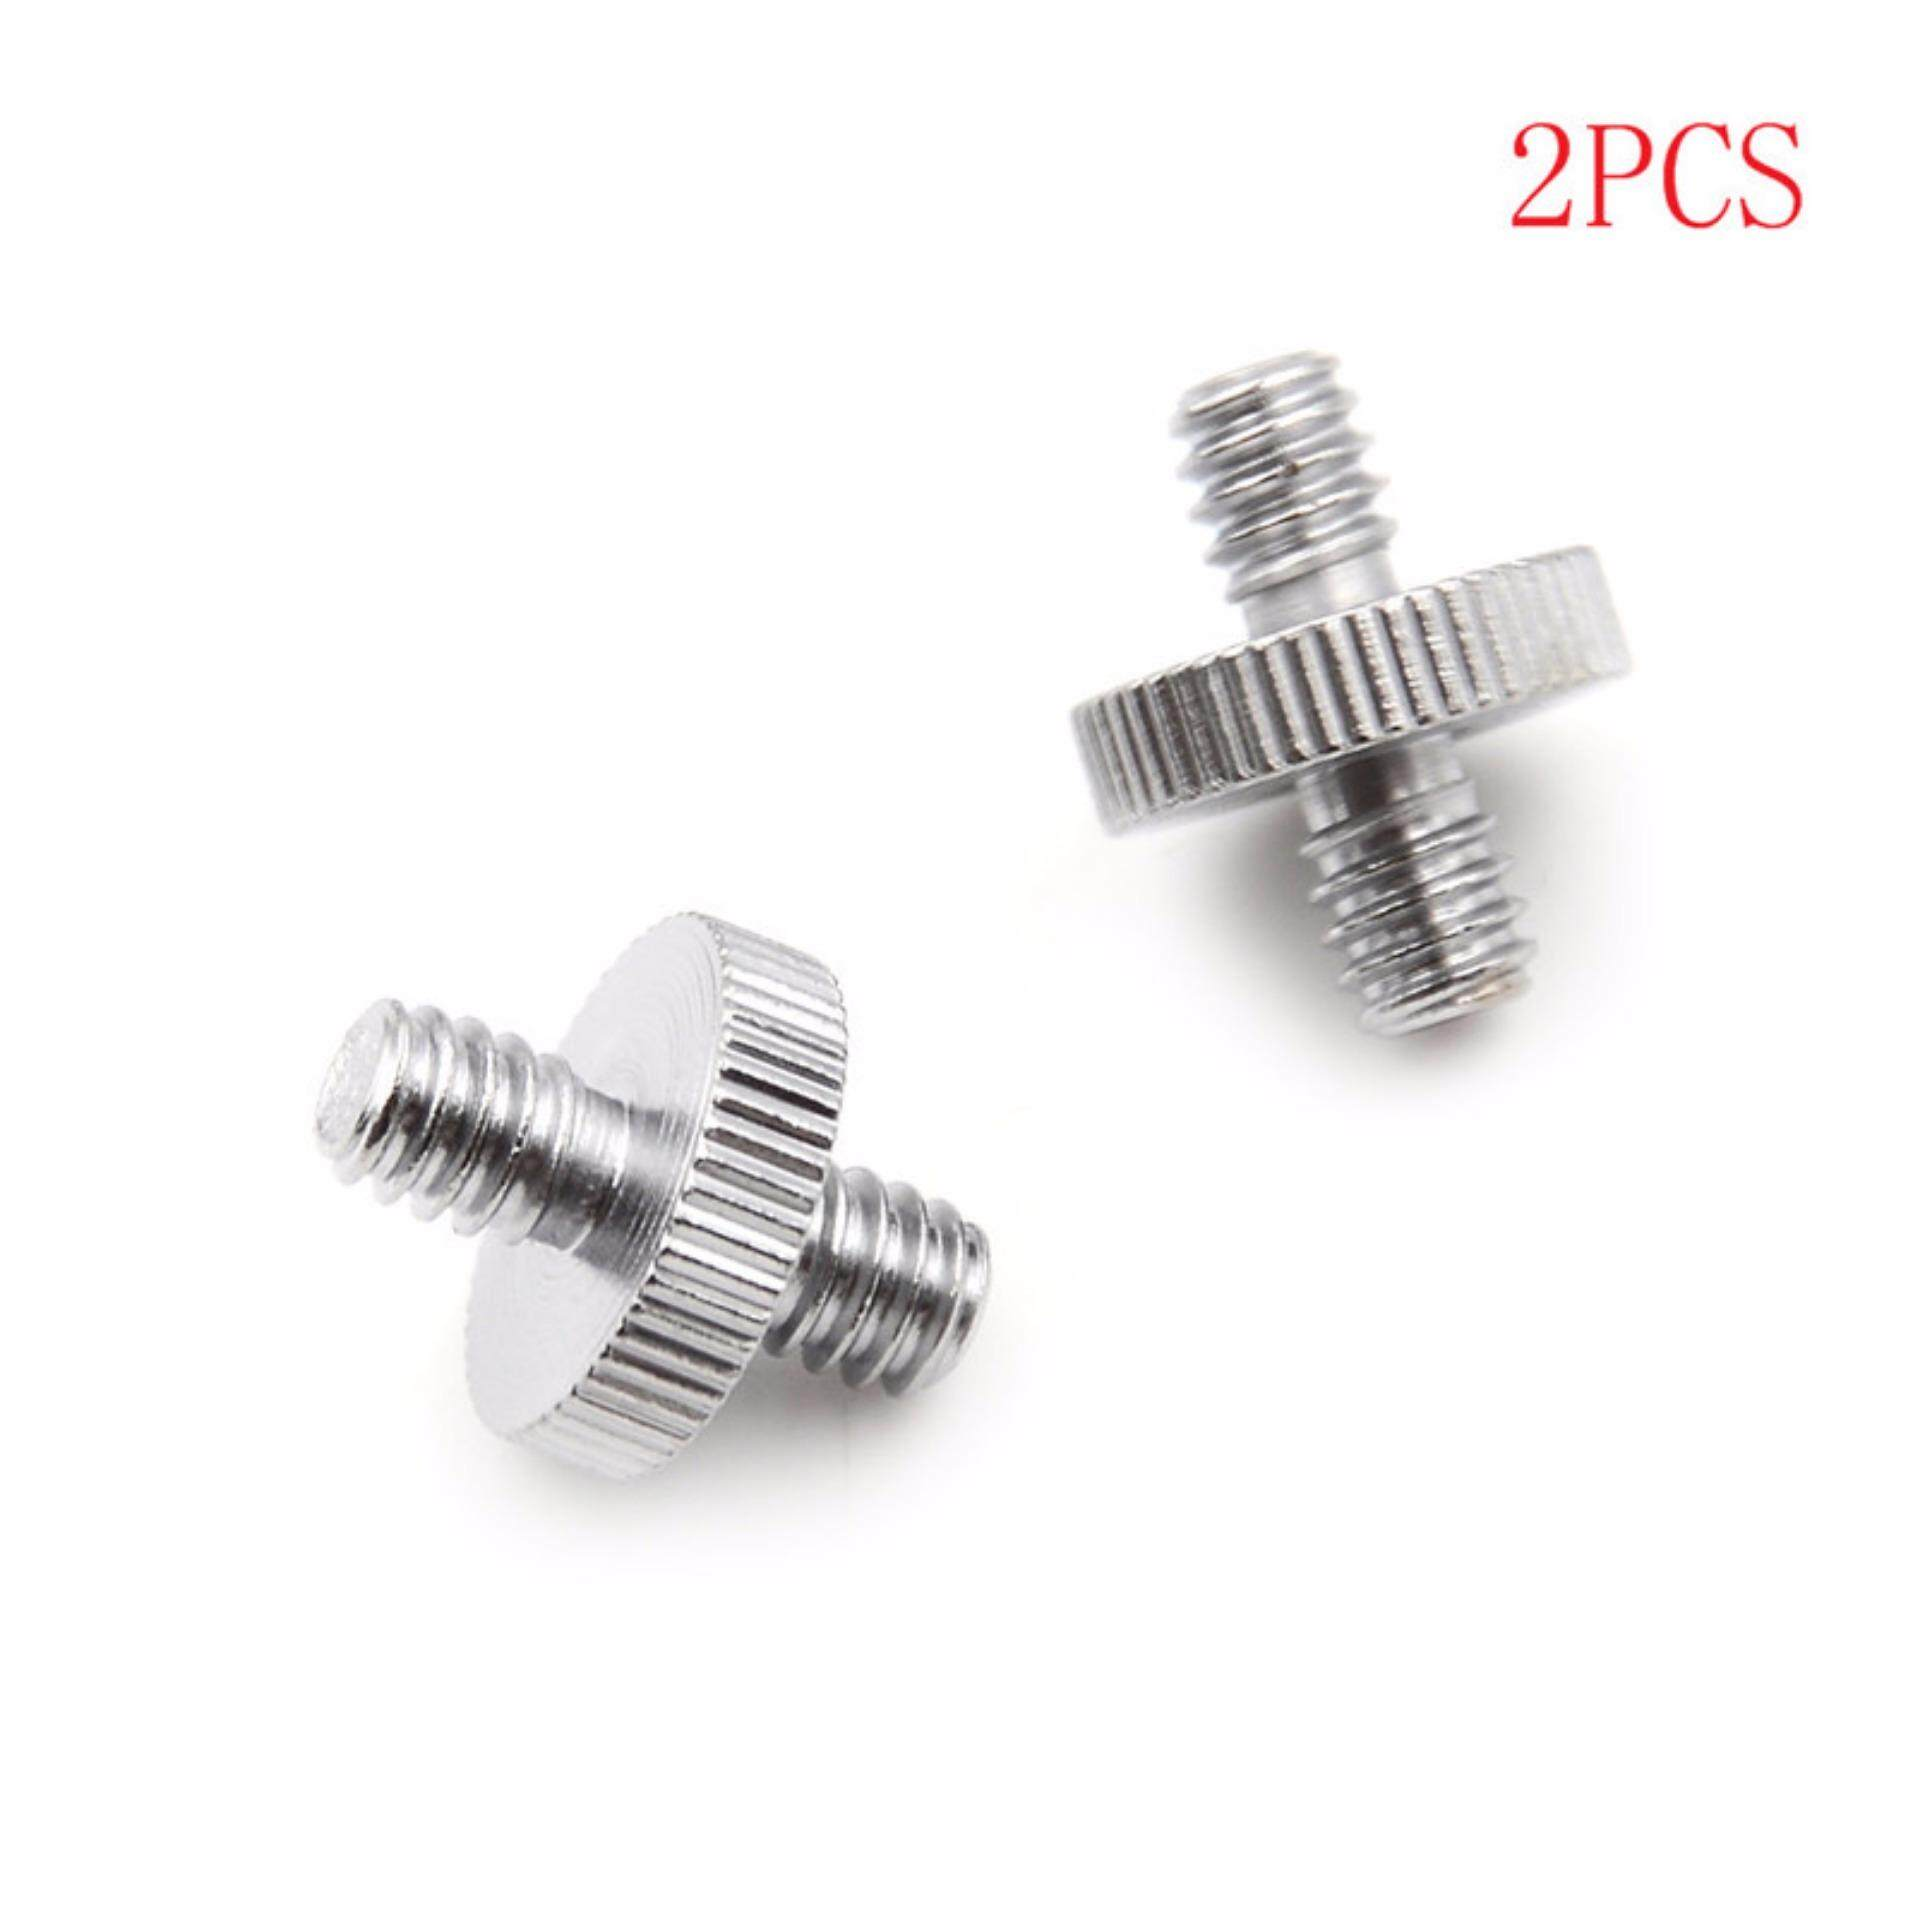 2pcs 1/4 1/4 Male To 1/4 Male Threaded Screw Adapter Double Head Screw